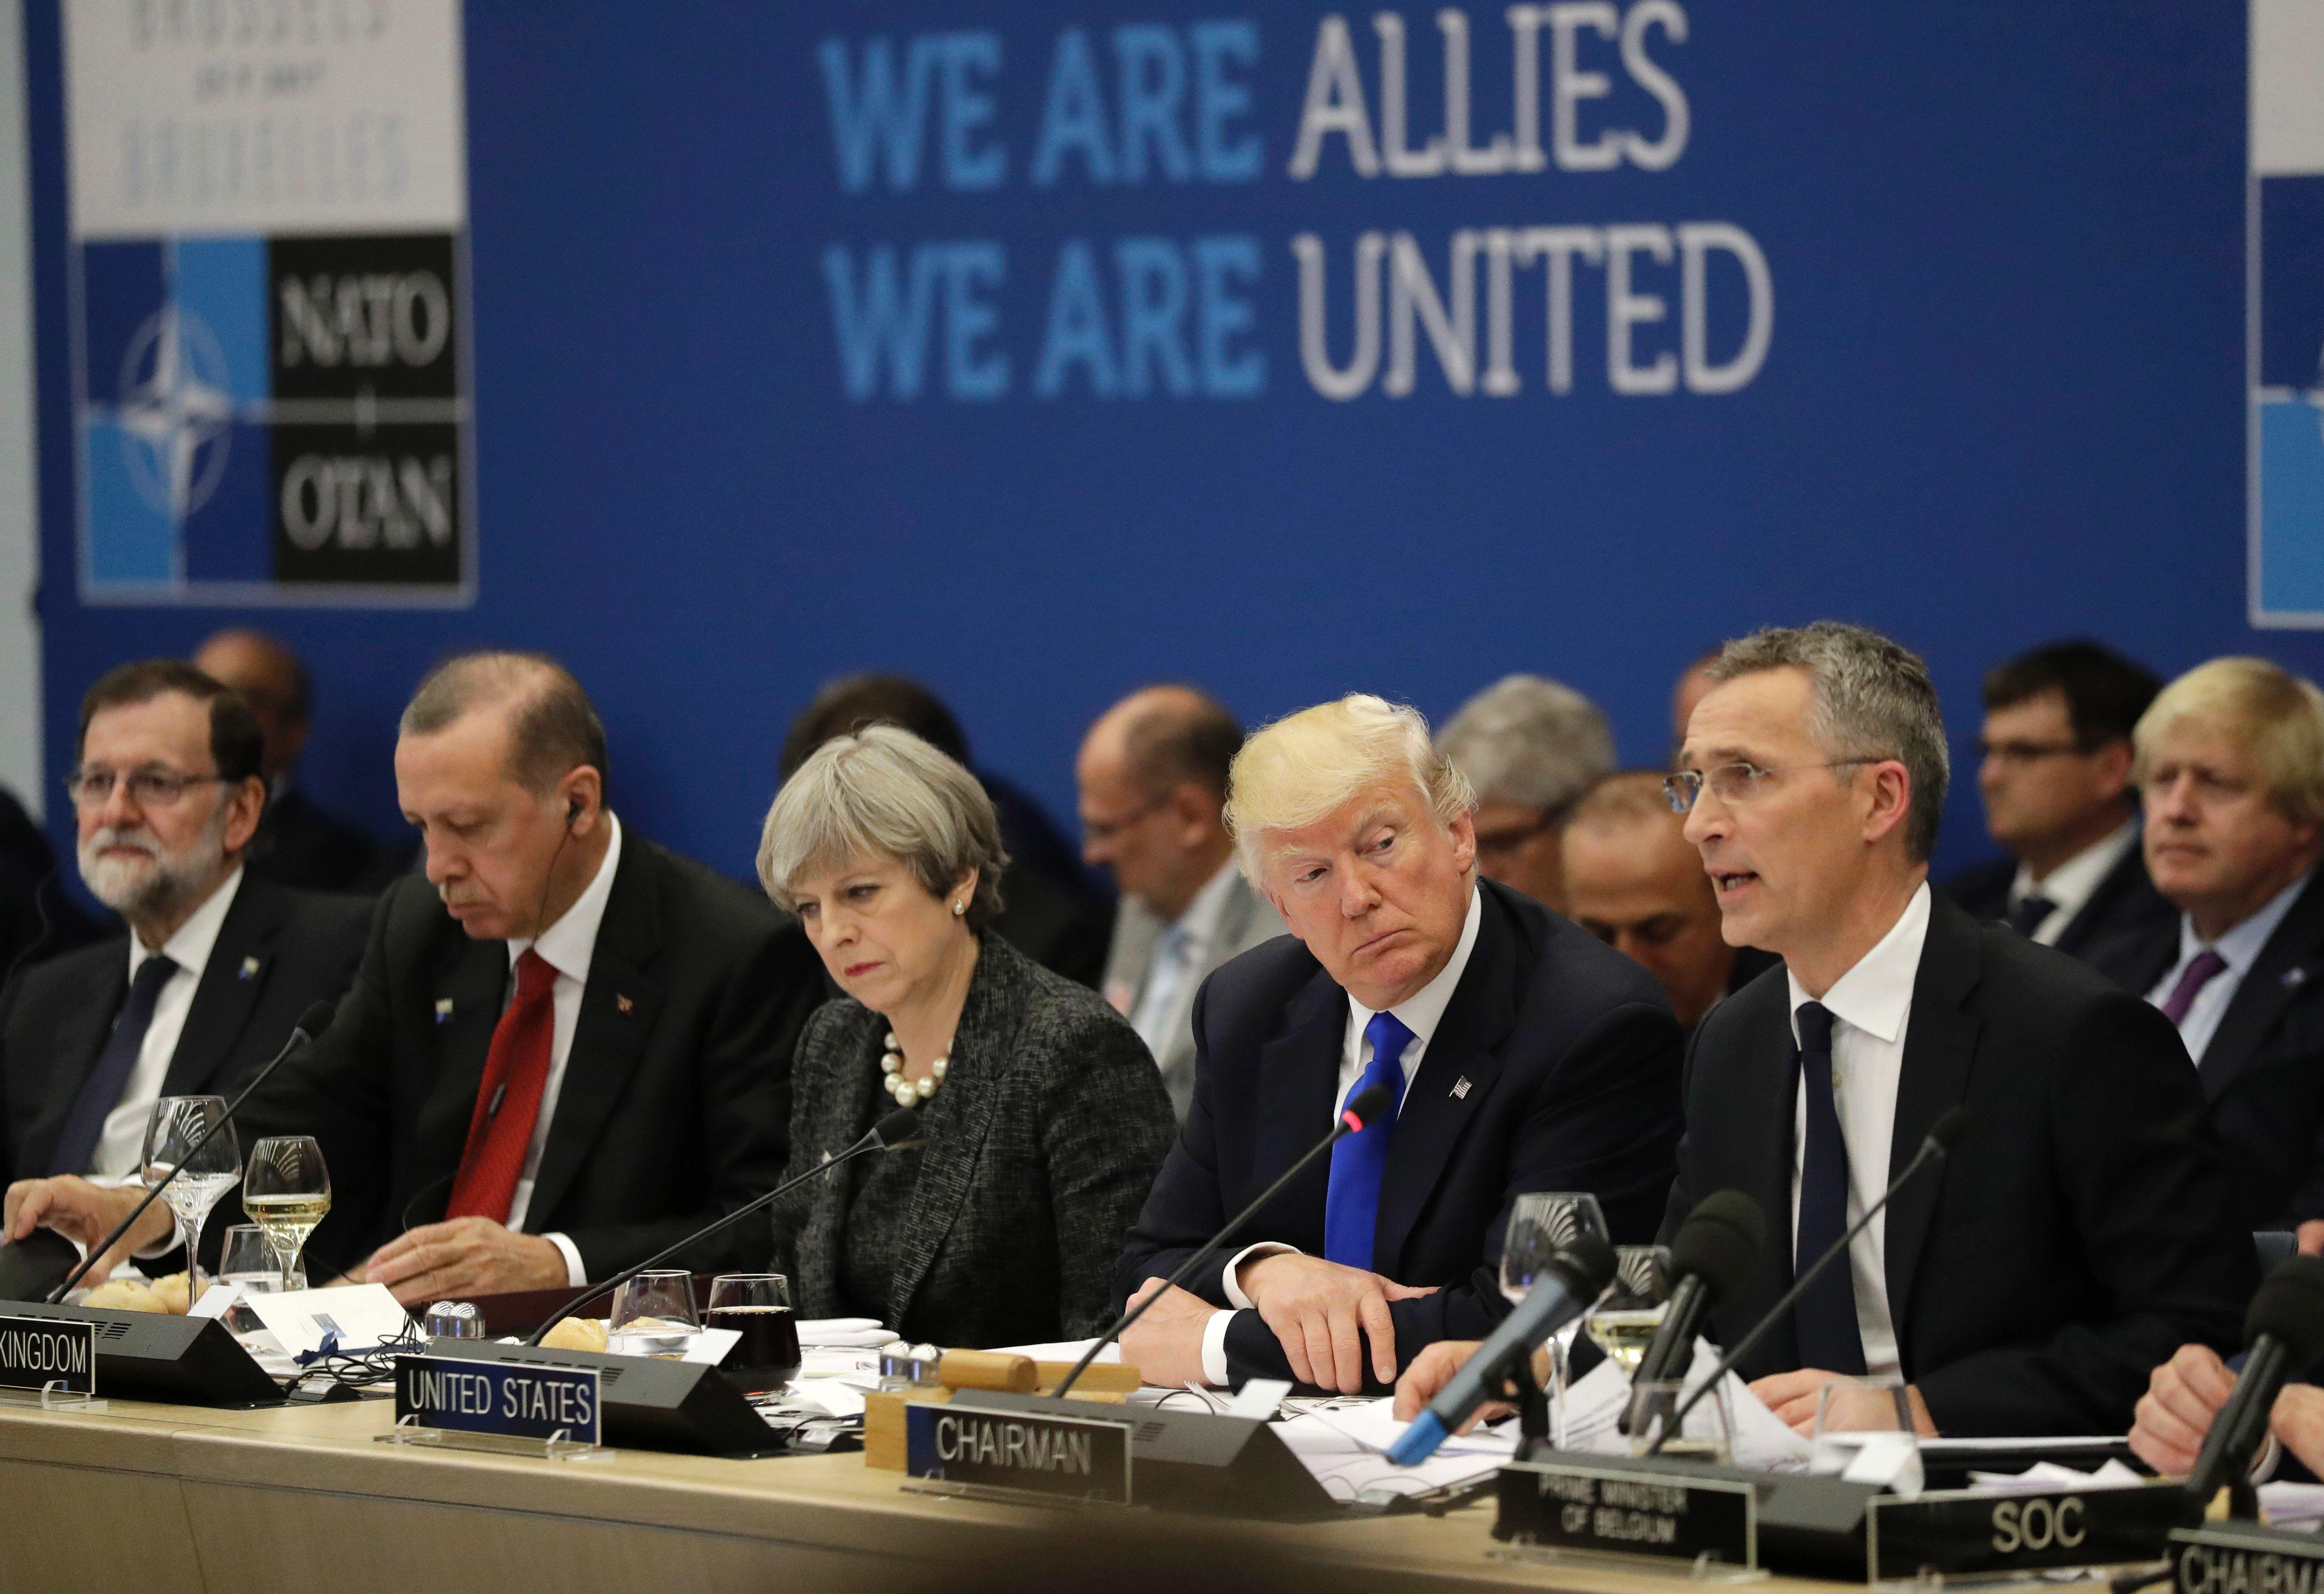 Turkey's President Recep Tayyip Erdogan, Britain's Prime Minister Theresa May, US President Donald Trump look on as NATO Secretary General Jens Stoltenberg speaks during the 2017 NATO summit in Brussels